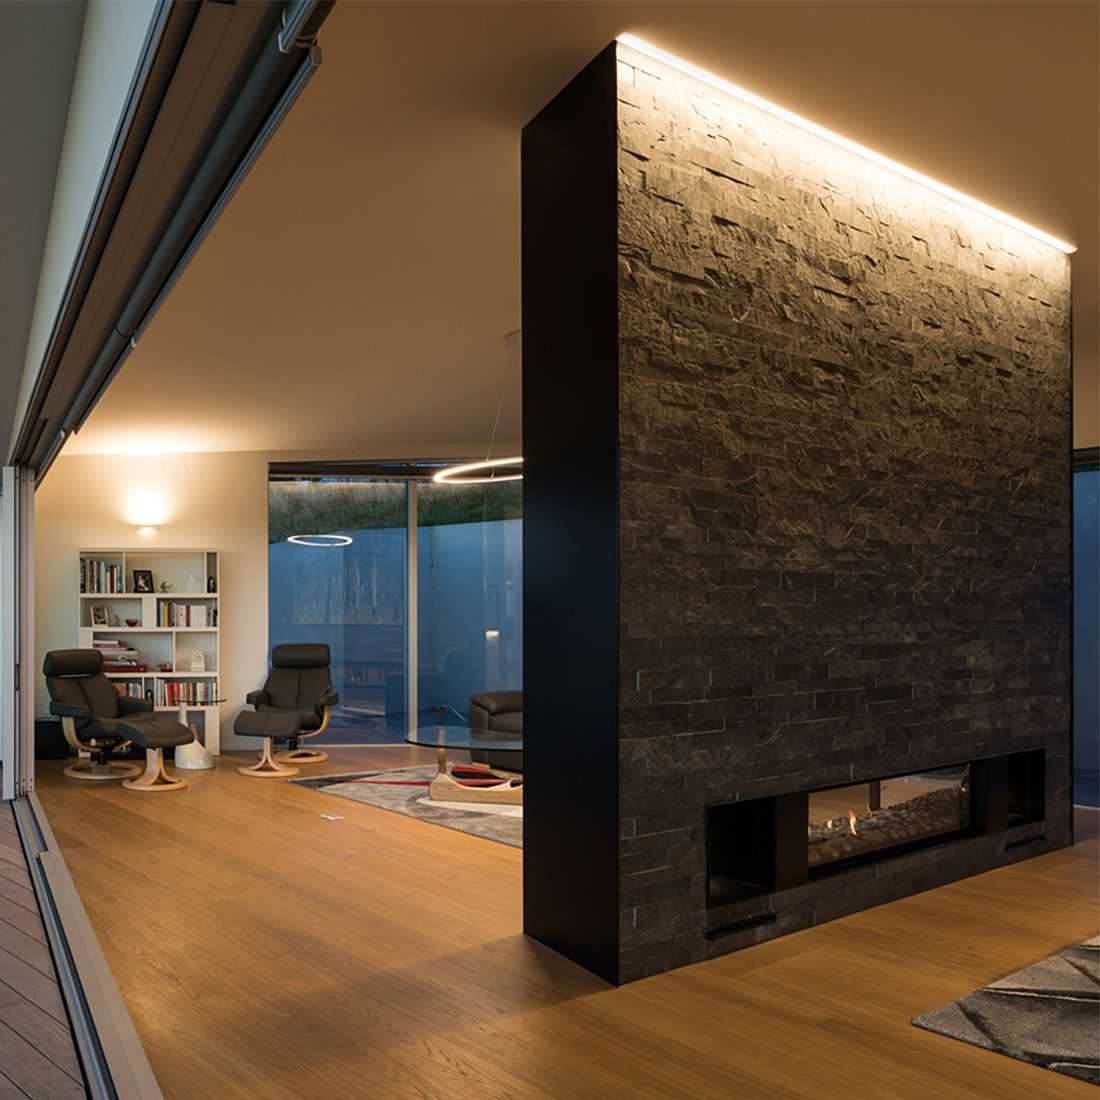 Image of: Alcon Lighting 12100 10 Pr Continuum 10 Architectural Led 1 Inch Trimless Linear Recessed Mount Direct Down Perimeter Light Strip